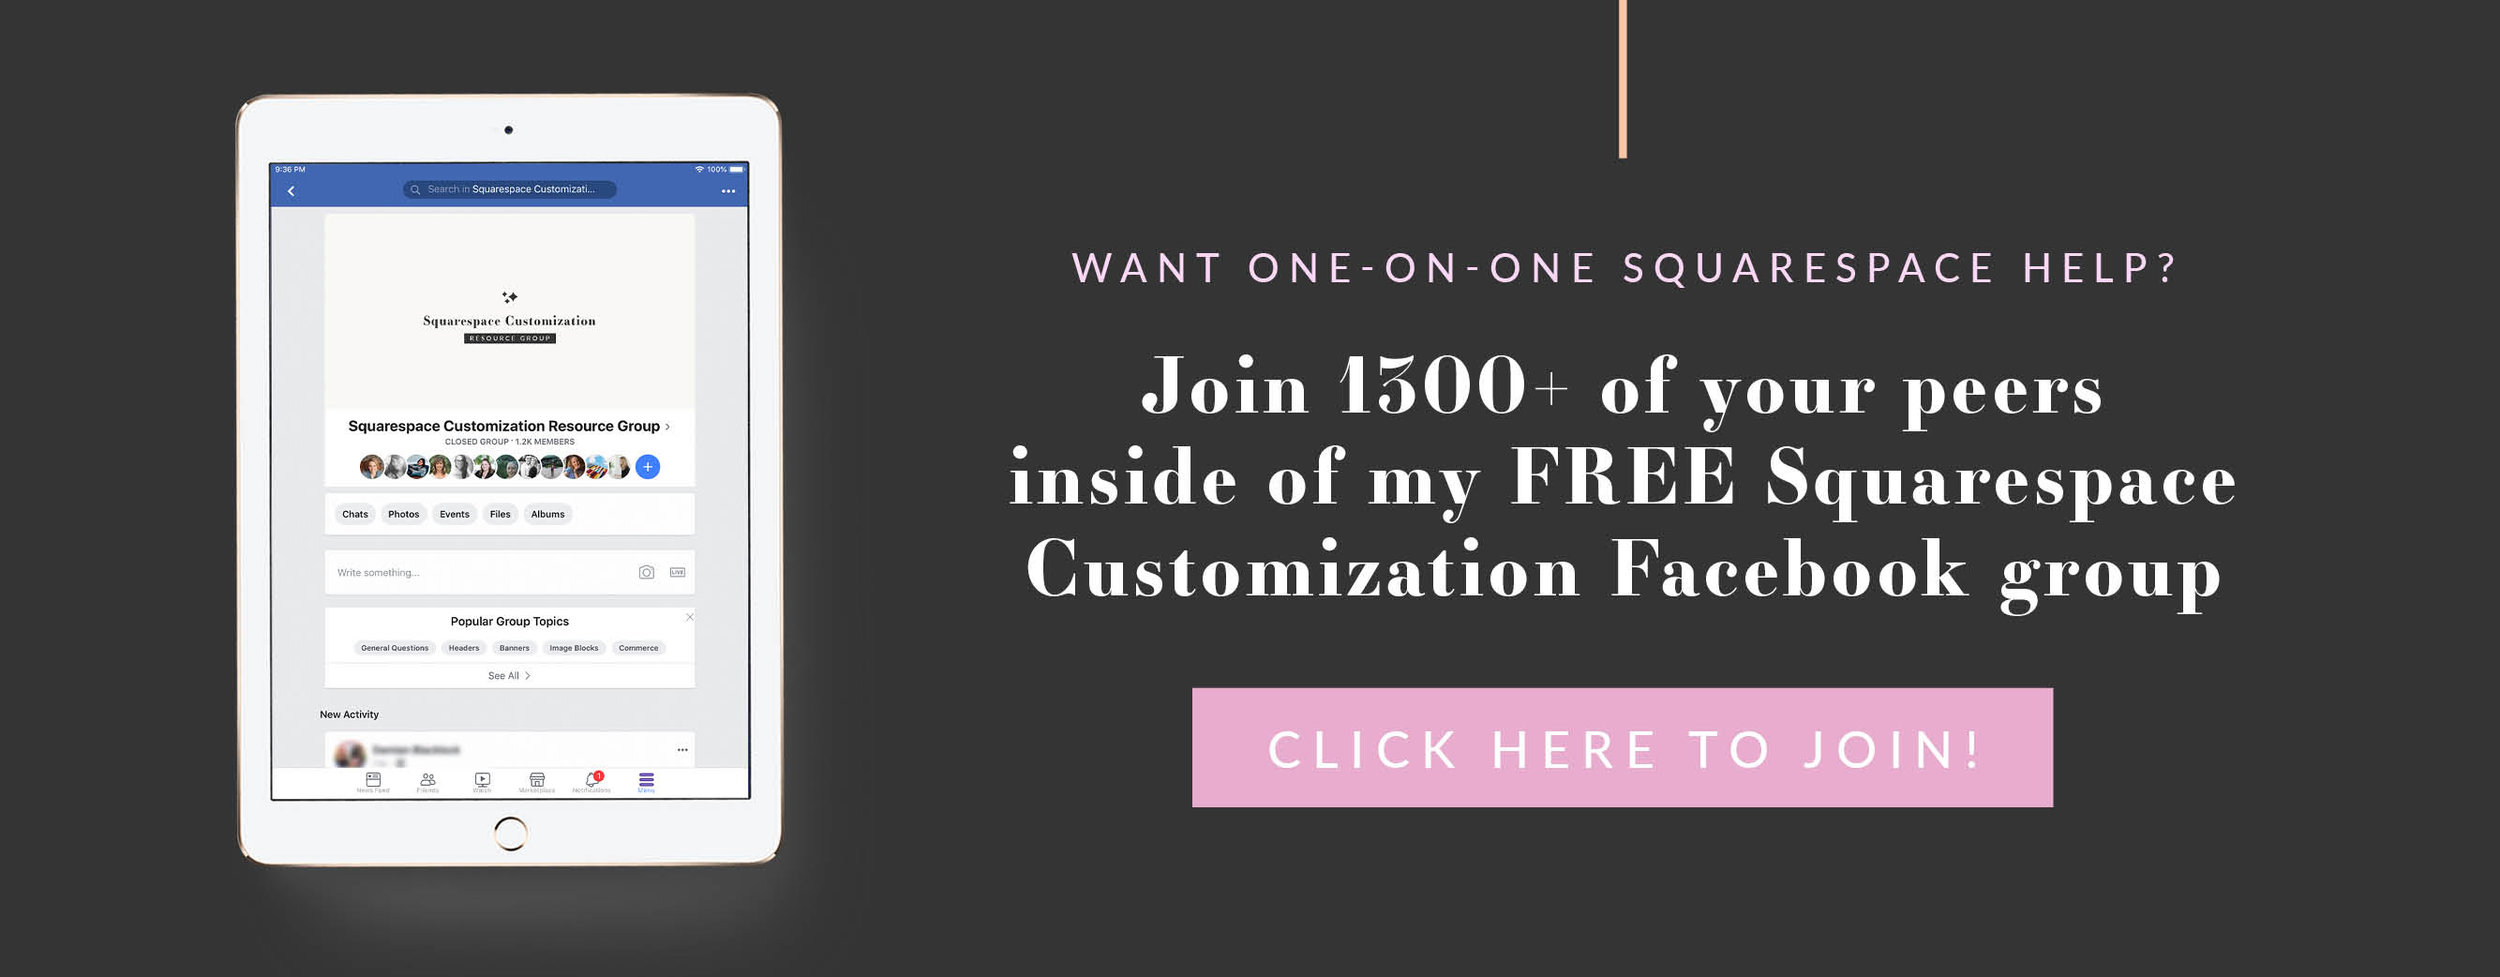 Click here to get free customization help for your Squarespace website inside my free Facebook group | My Billie Designs